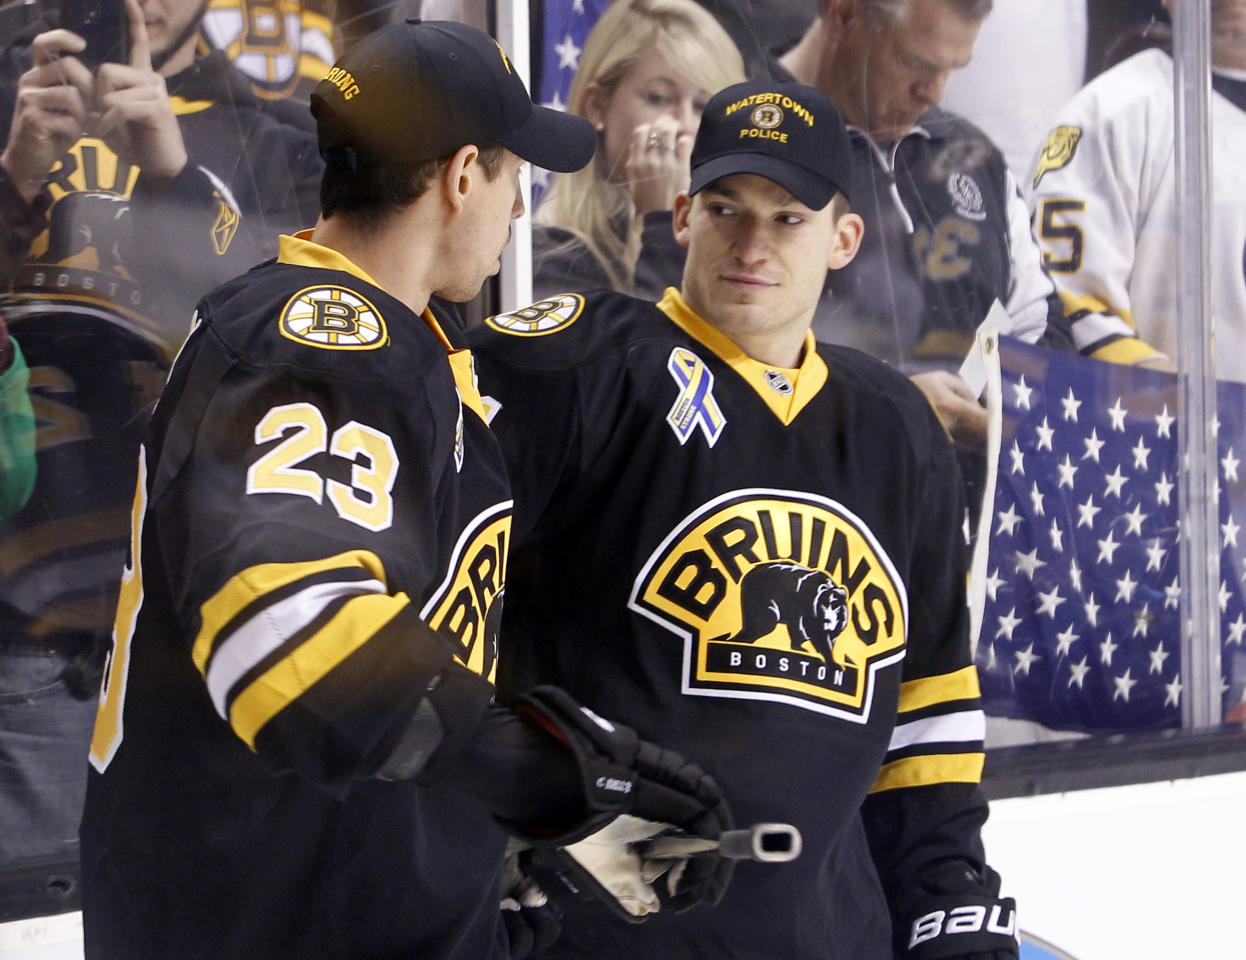 Wearing hats from local law enforcement agencies, Boston Bruins defenseman Andrew Ference, right, talks with teammate Chris Kelly (23) before an NHL hockey game against the Pittsburgh Penguins, Saturday, April 20, 2013, in Boston. (AP Photo/Mary Schwalm)